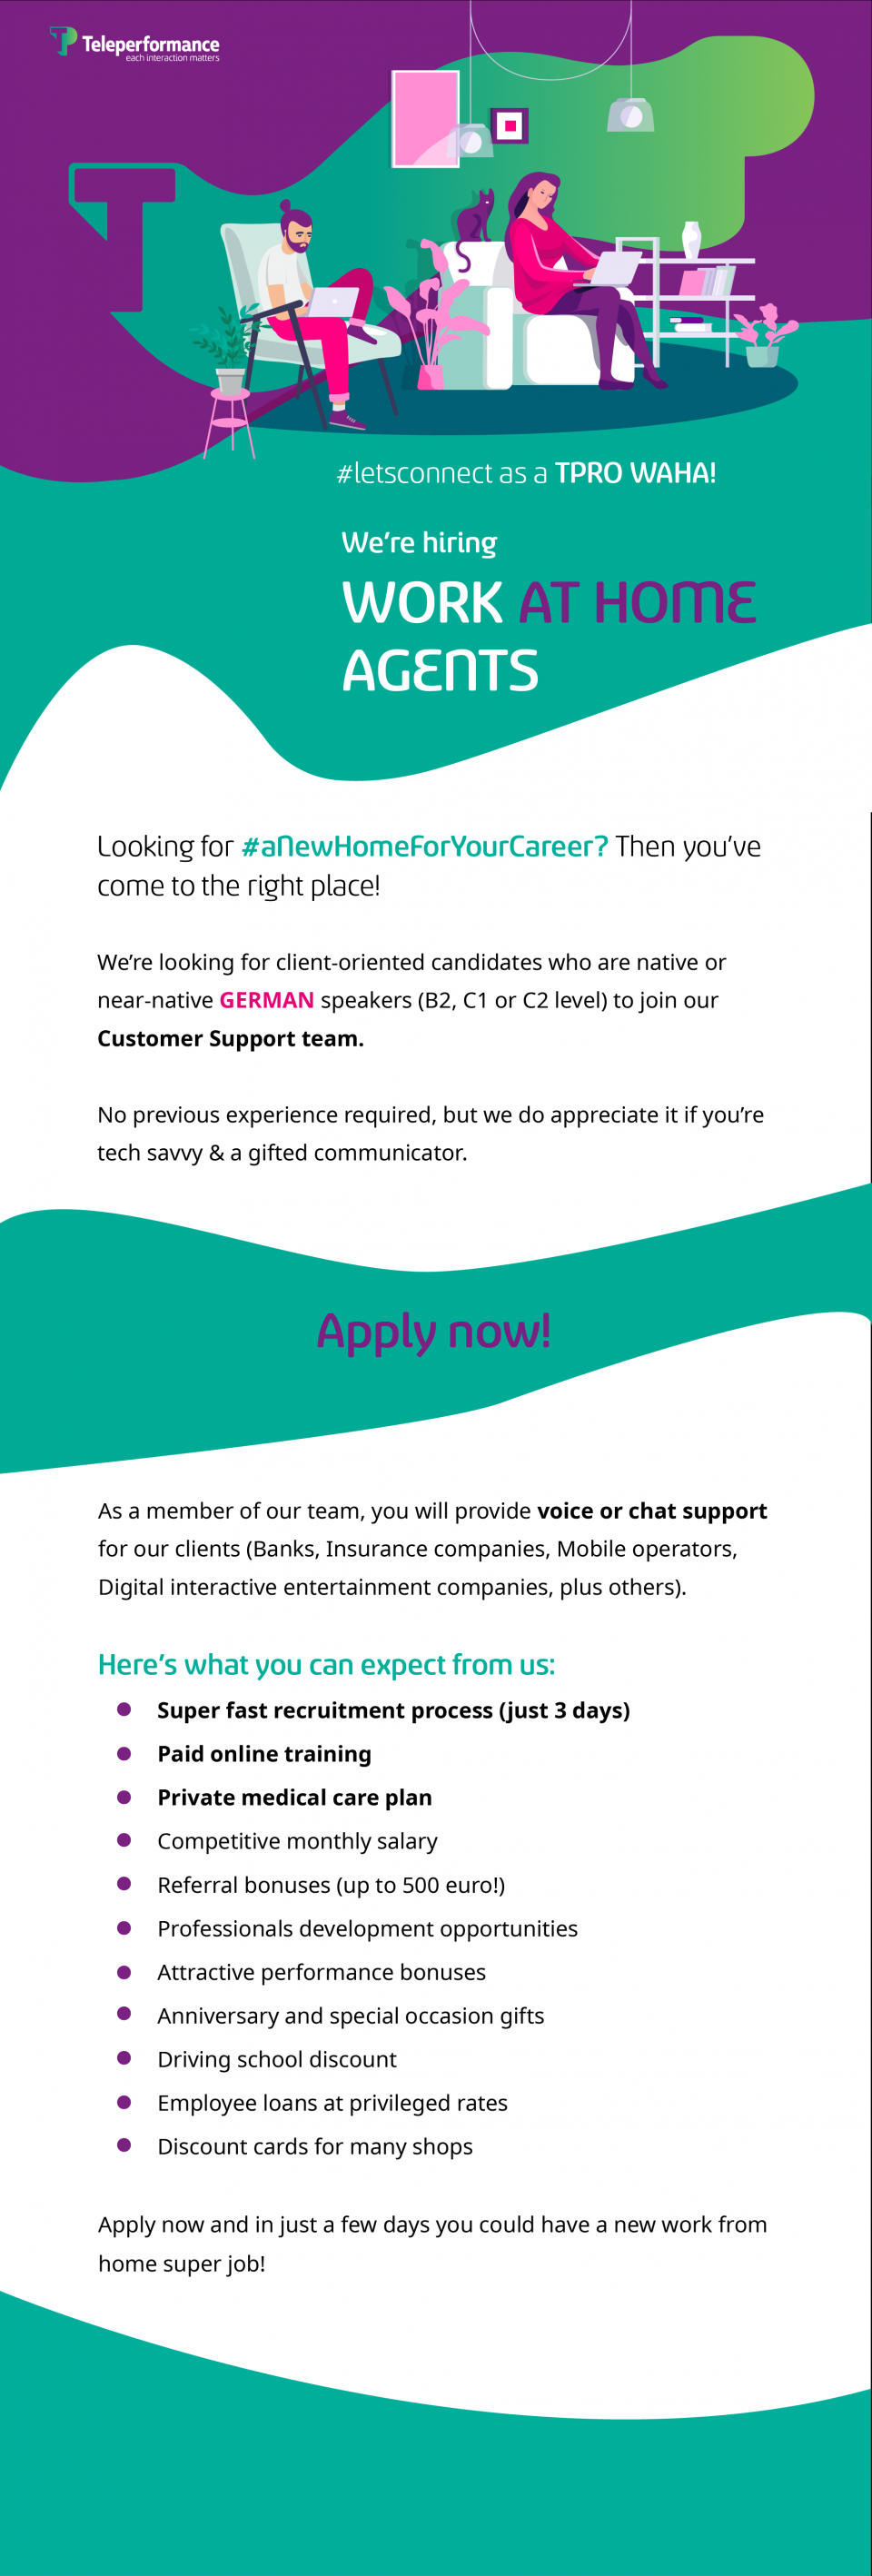 #letsconnect as a TPRO WAHA!  We're hiring Work AT HOME Agents Looking for #aNewHomeForYourCareer? Then you've come to the right place! We're looking for client-oriented candidates who are native or near-native GERMAN speakers (B2, C1 or C2 level) to join our Customer Support team.  No previous experience required, but we do appreciate it if you're tech savvy & a gifted communicator. Apply now!  As a member of our team, you will provide voice or chat support for our clients (Banks, Insurance companies, Mobile operators, Digital interactive entertainment companies, plus others). Here's what you can expect from us: ➔ Super-fast recruitment process ➔ Competitive monthly salary ➔ Attractive performance bonuses ➔ Paid online training ➔ Referral bonuses (up to 500 euro!) ➔ Professionals development opportunities ➔ Private medical insurance ➔ Anniversary and special occasion gifts ➔ Driving school discount ➔ Employee loans at privileged rates ➔ Discount cards for many shops Apply now and in just a few days you could have a new work from home super job!